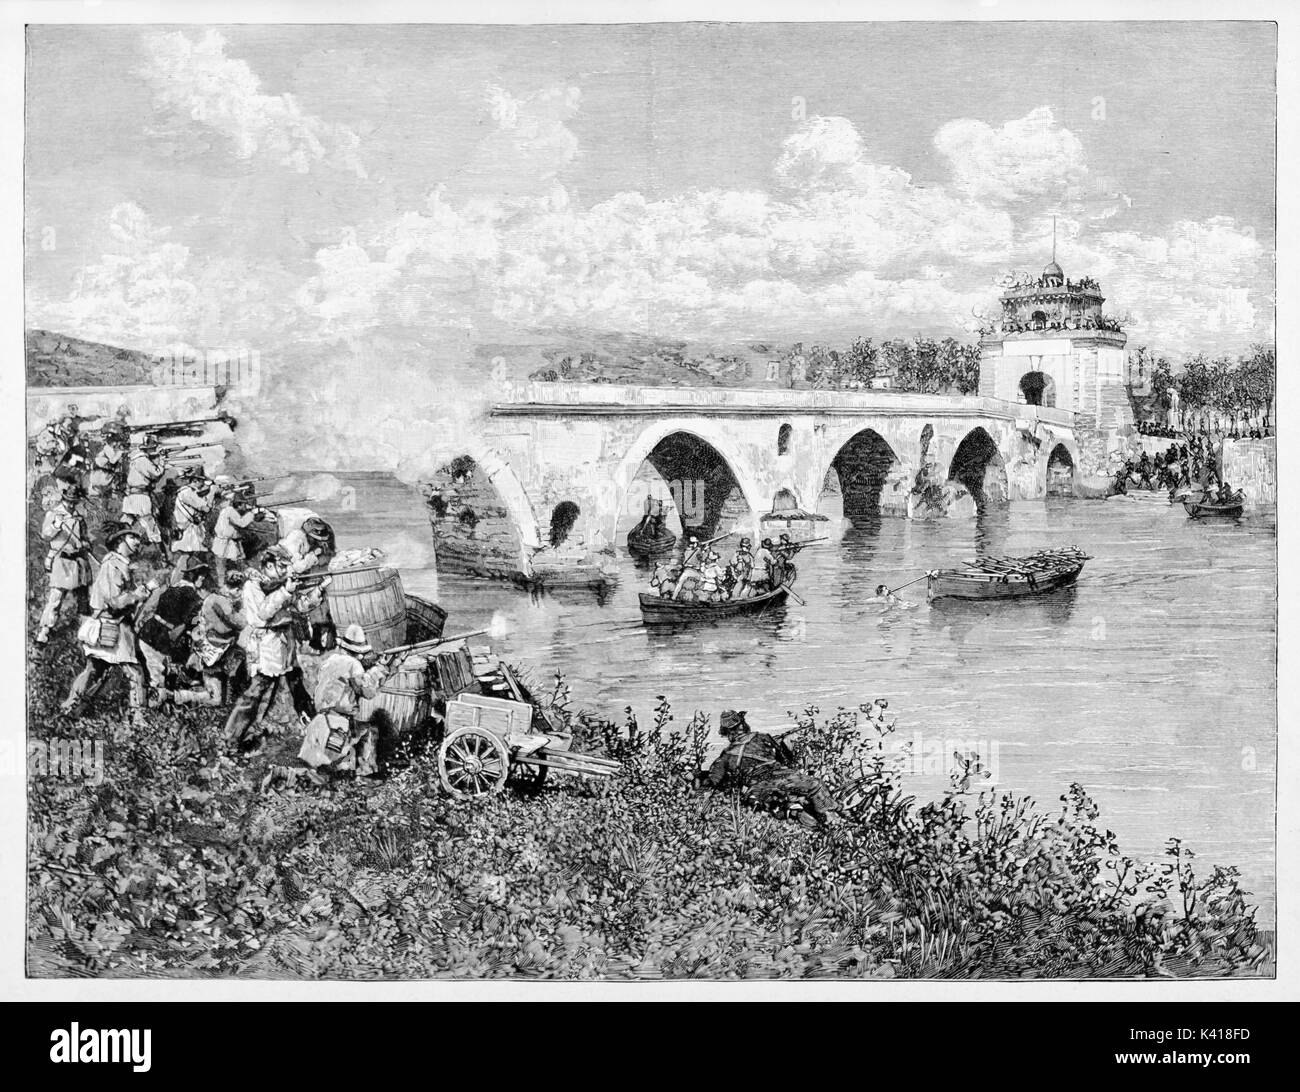 Ancient troops try to conquer a bridge and the opposite shore, fighting and bombing the enemies. Milvian Bridge battle (Rome 1849). By E. Matania published on Garibaldi e i Suoi Tempi Milan Italy 1884 - Stock Image